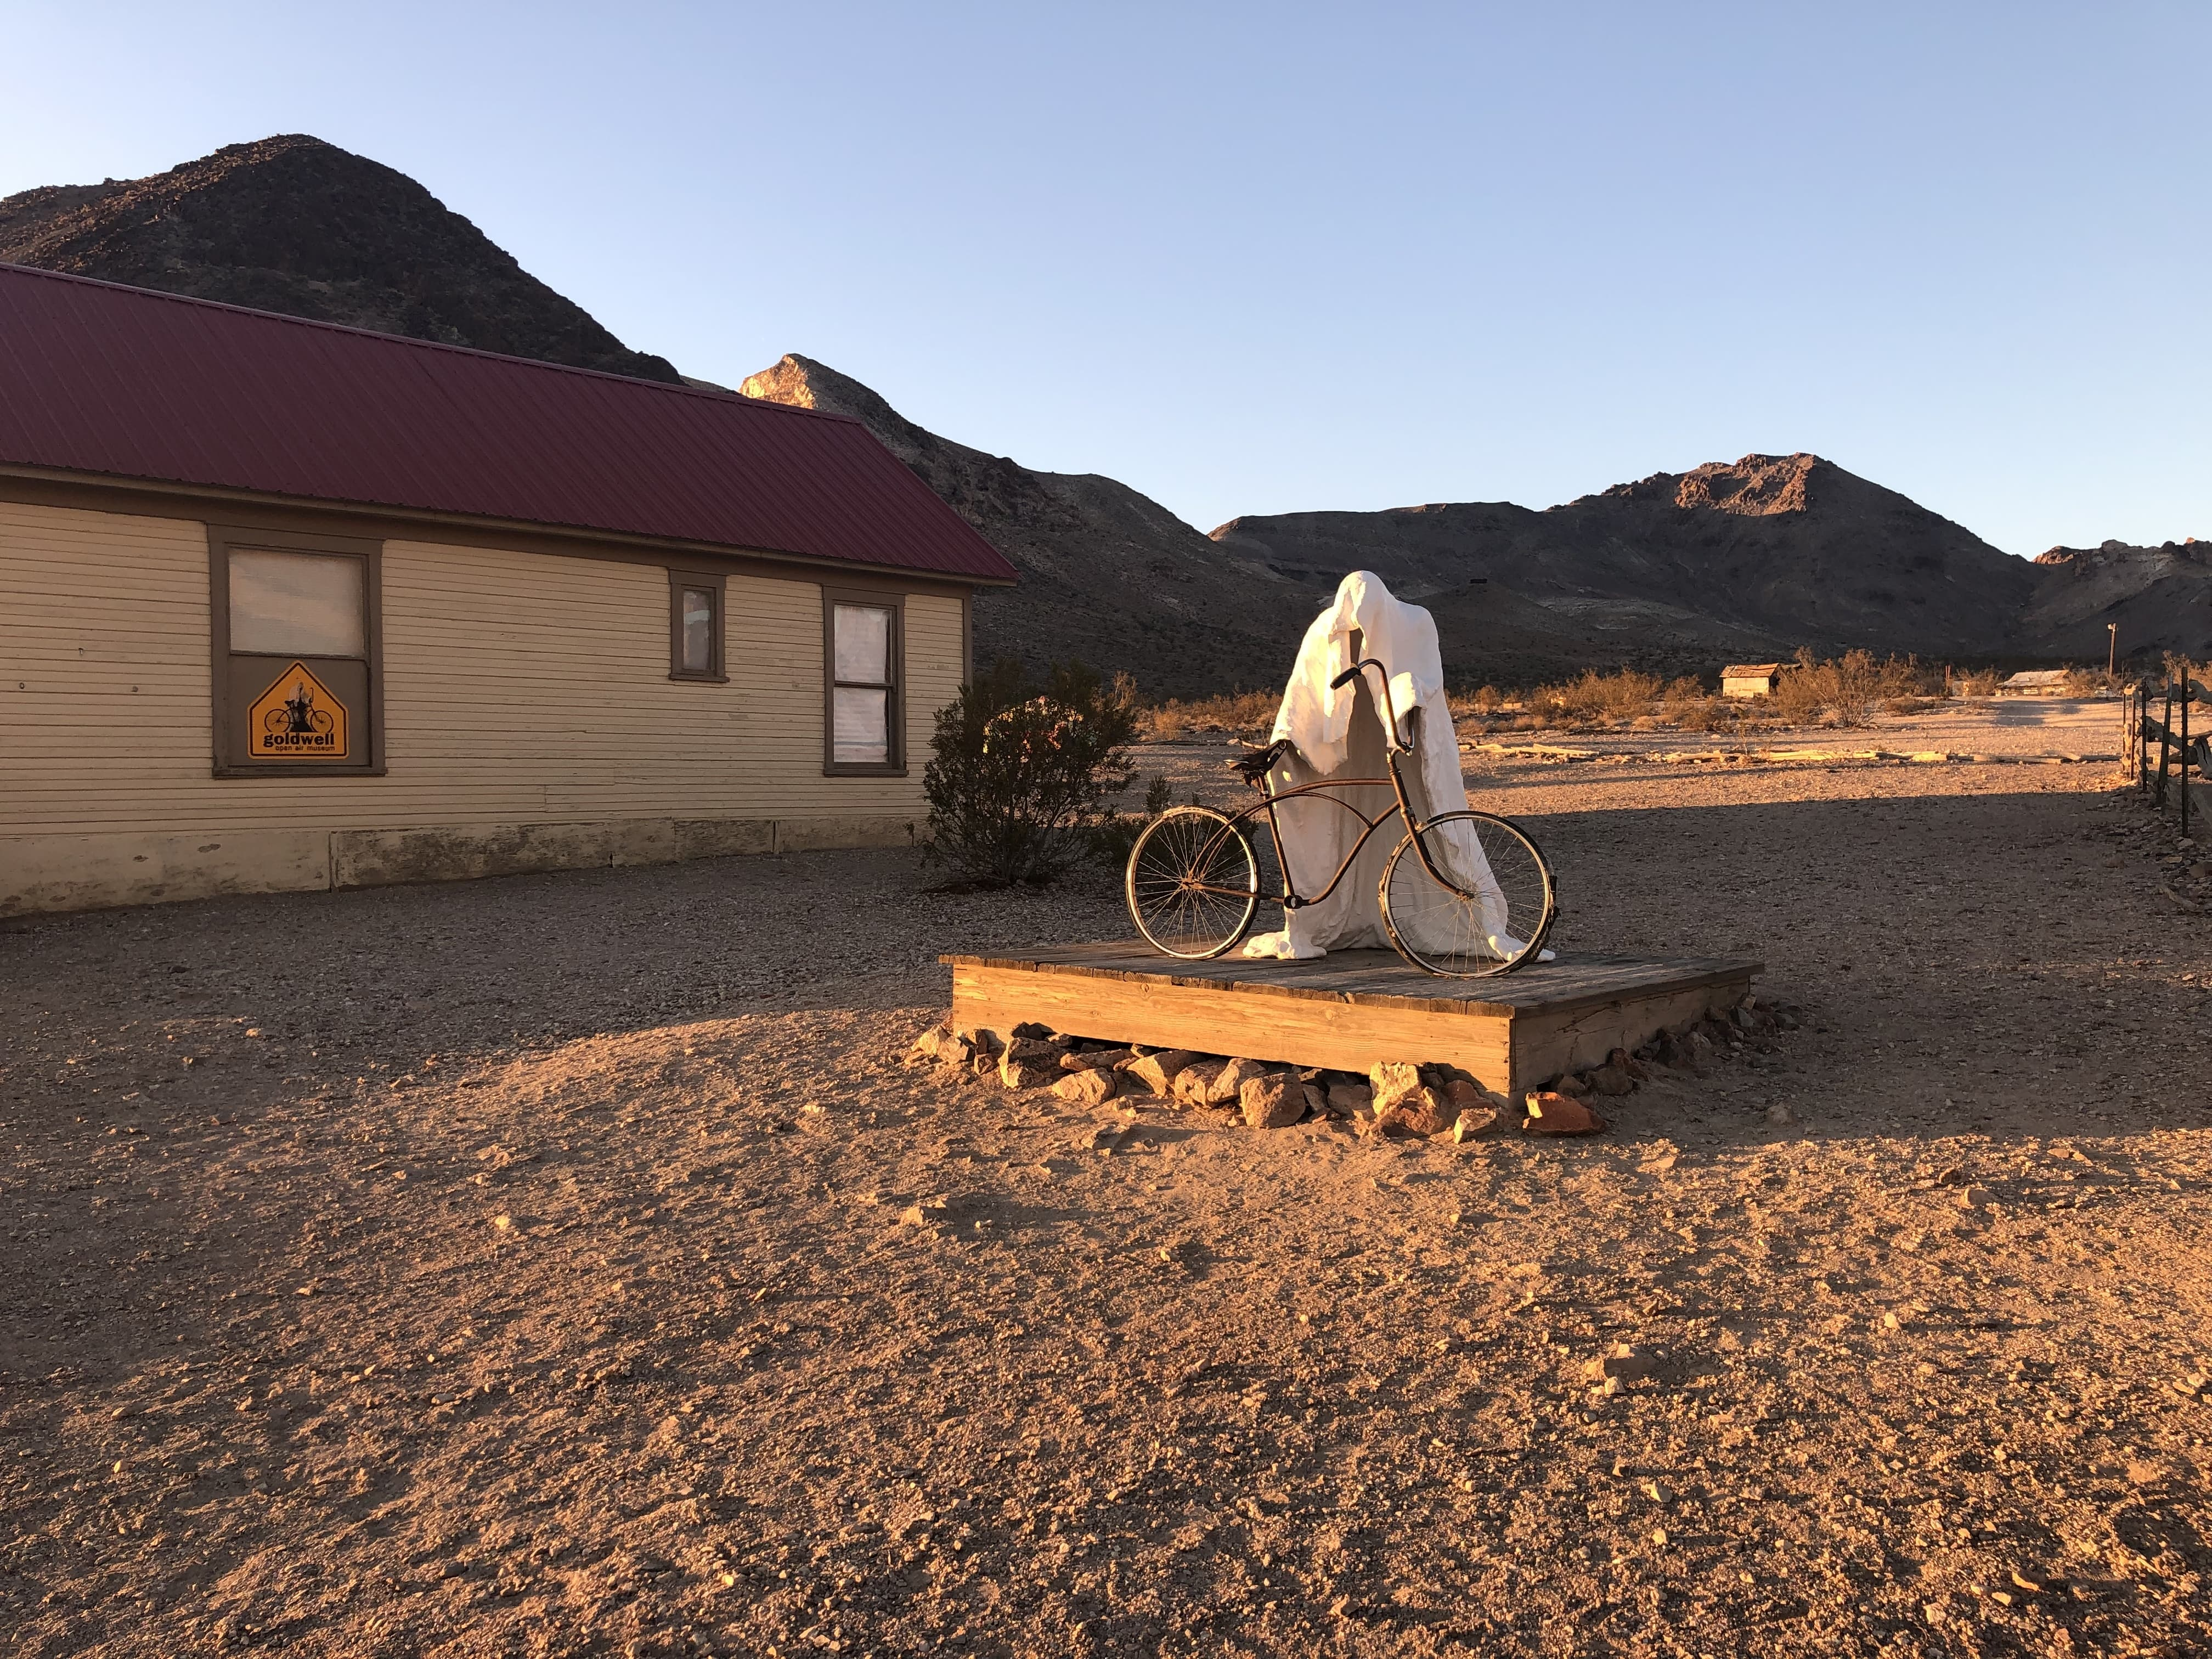 """Ride a bicycle"" is one of Albert Szukalksi's sculptures at Rhyolite"